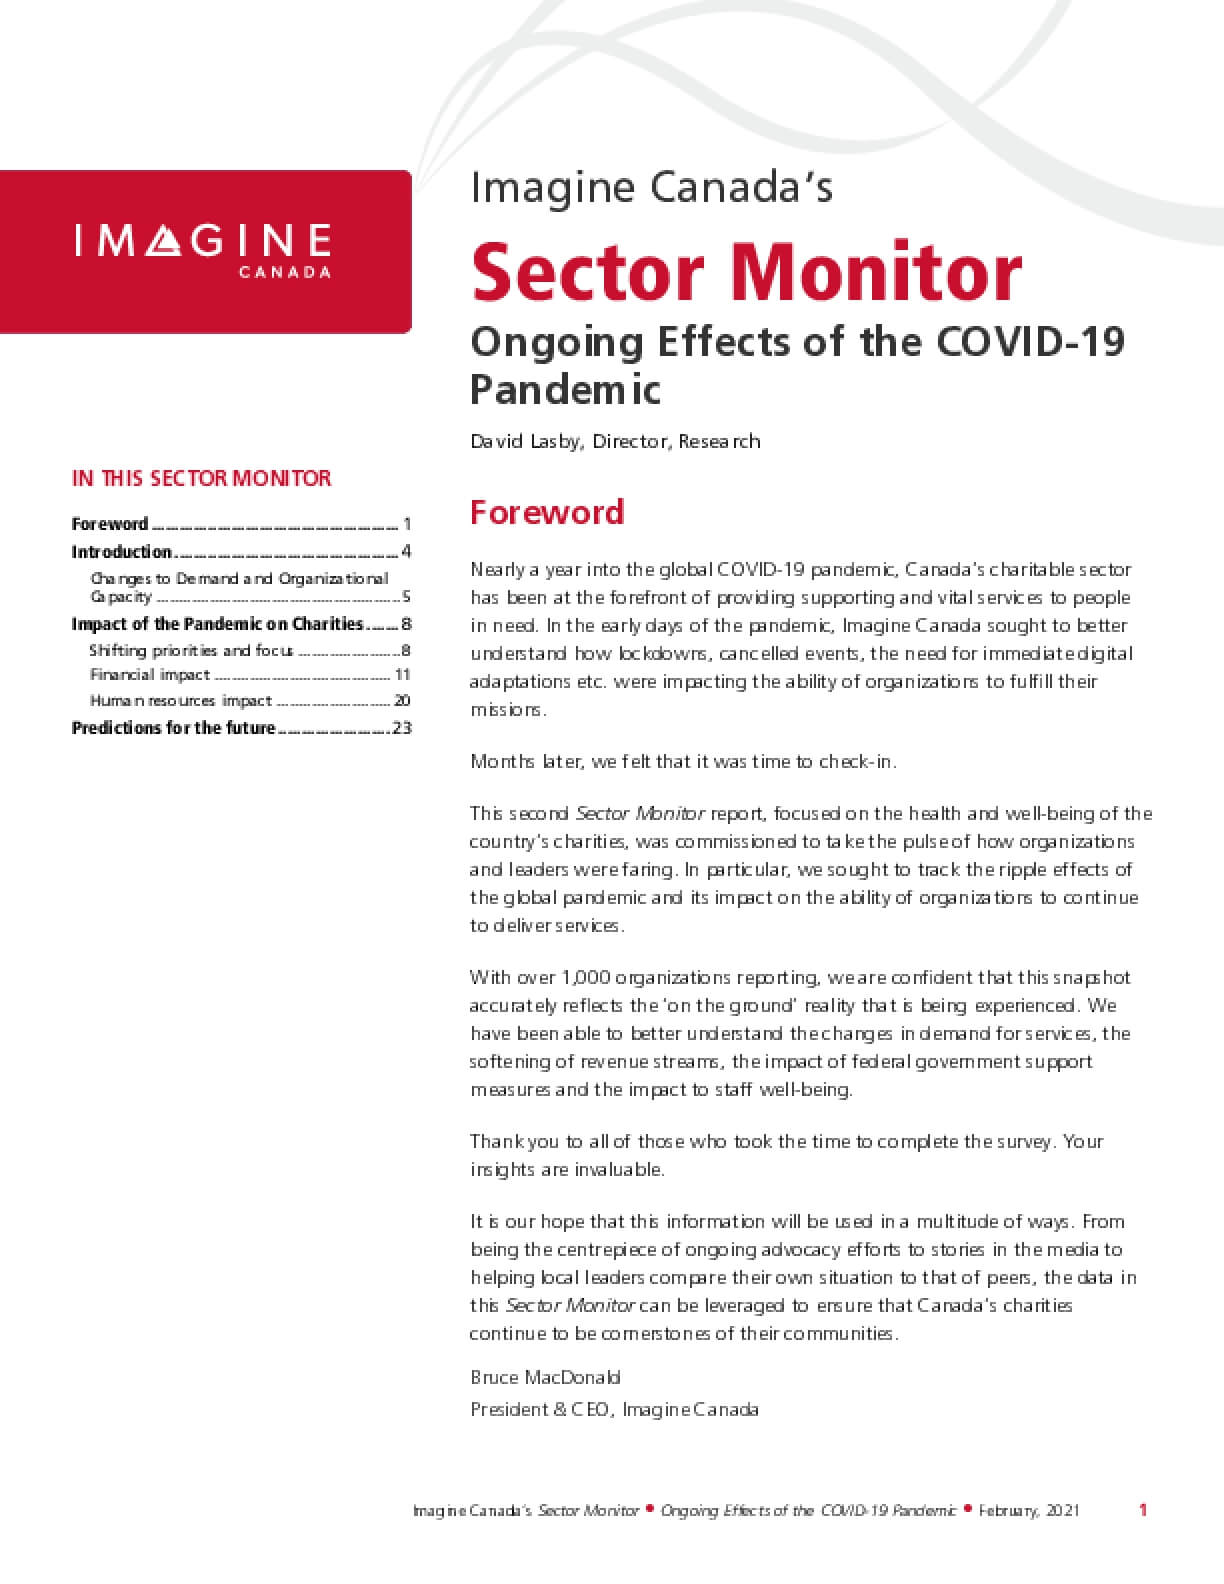 Imagine Canada's Sector Monitor: Ongoing Effects of the COVID-19 Pandemic